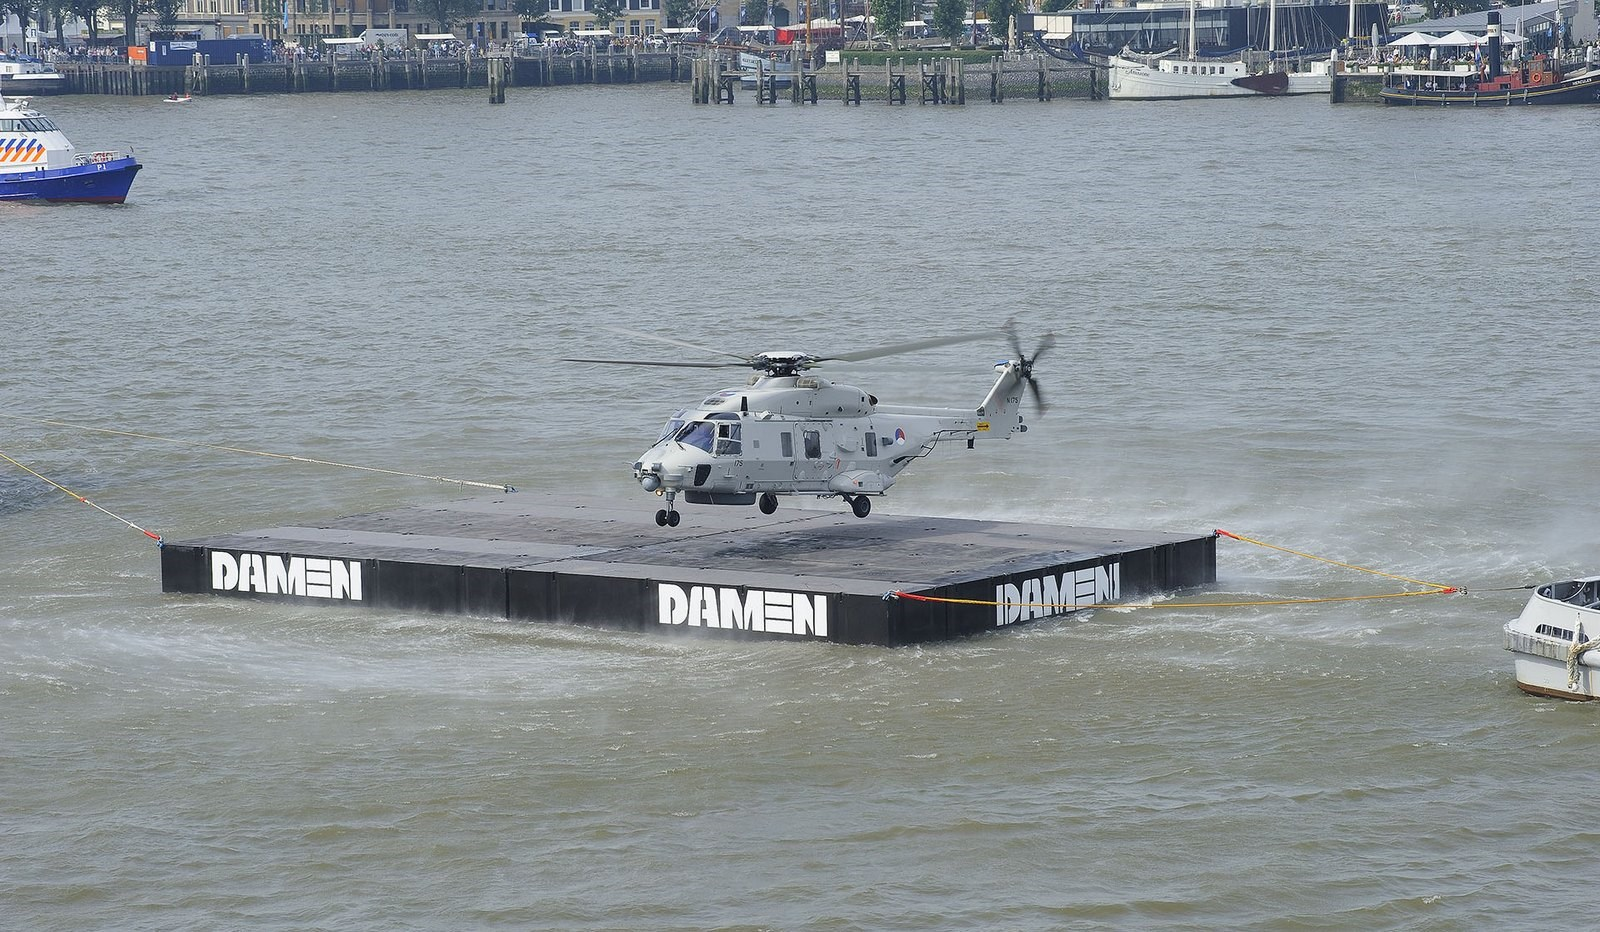 Damen Modular Pontoon 2414